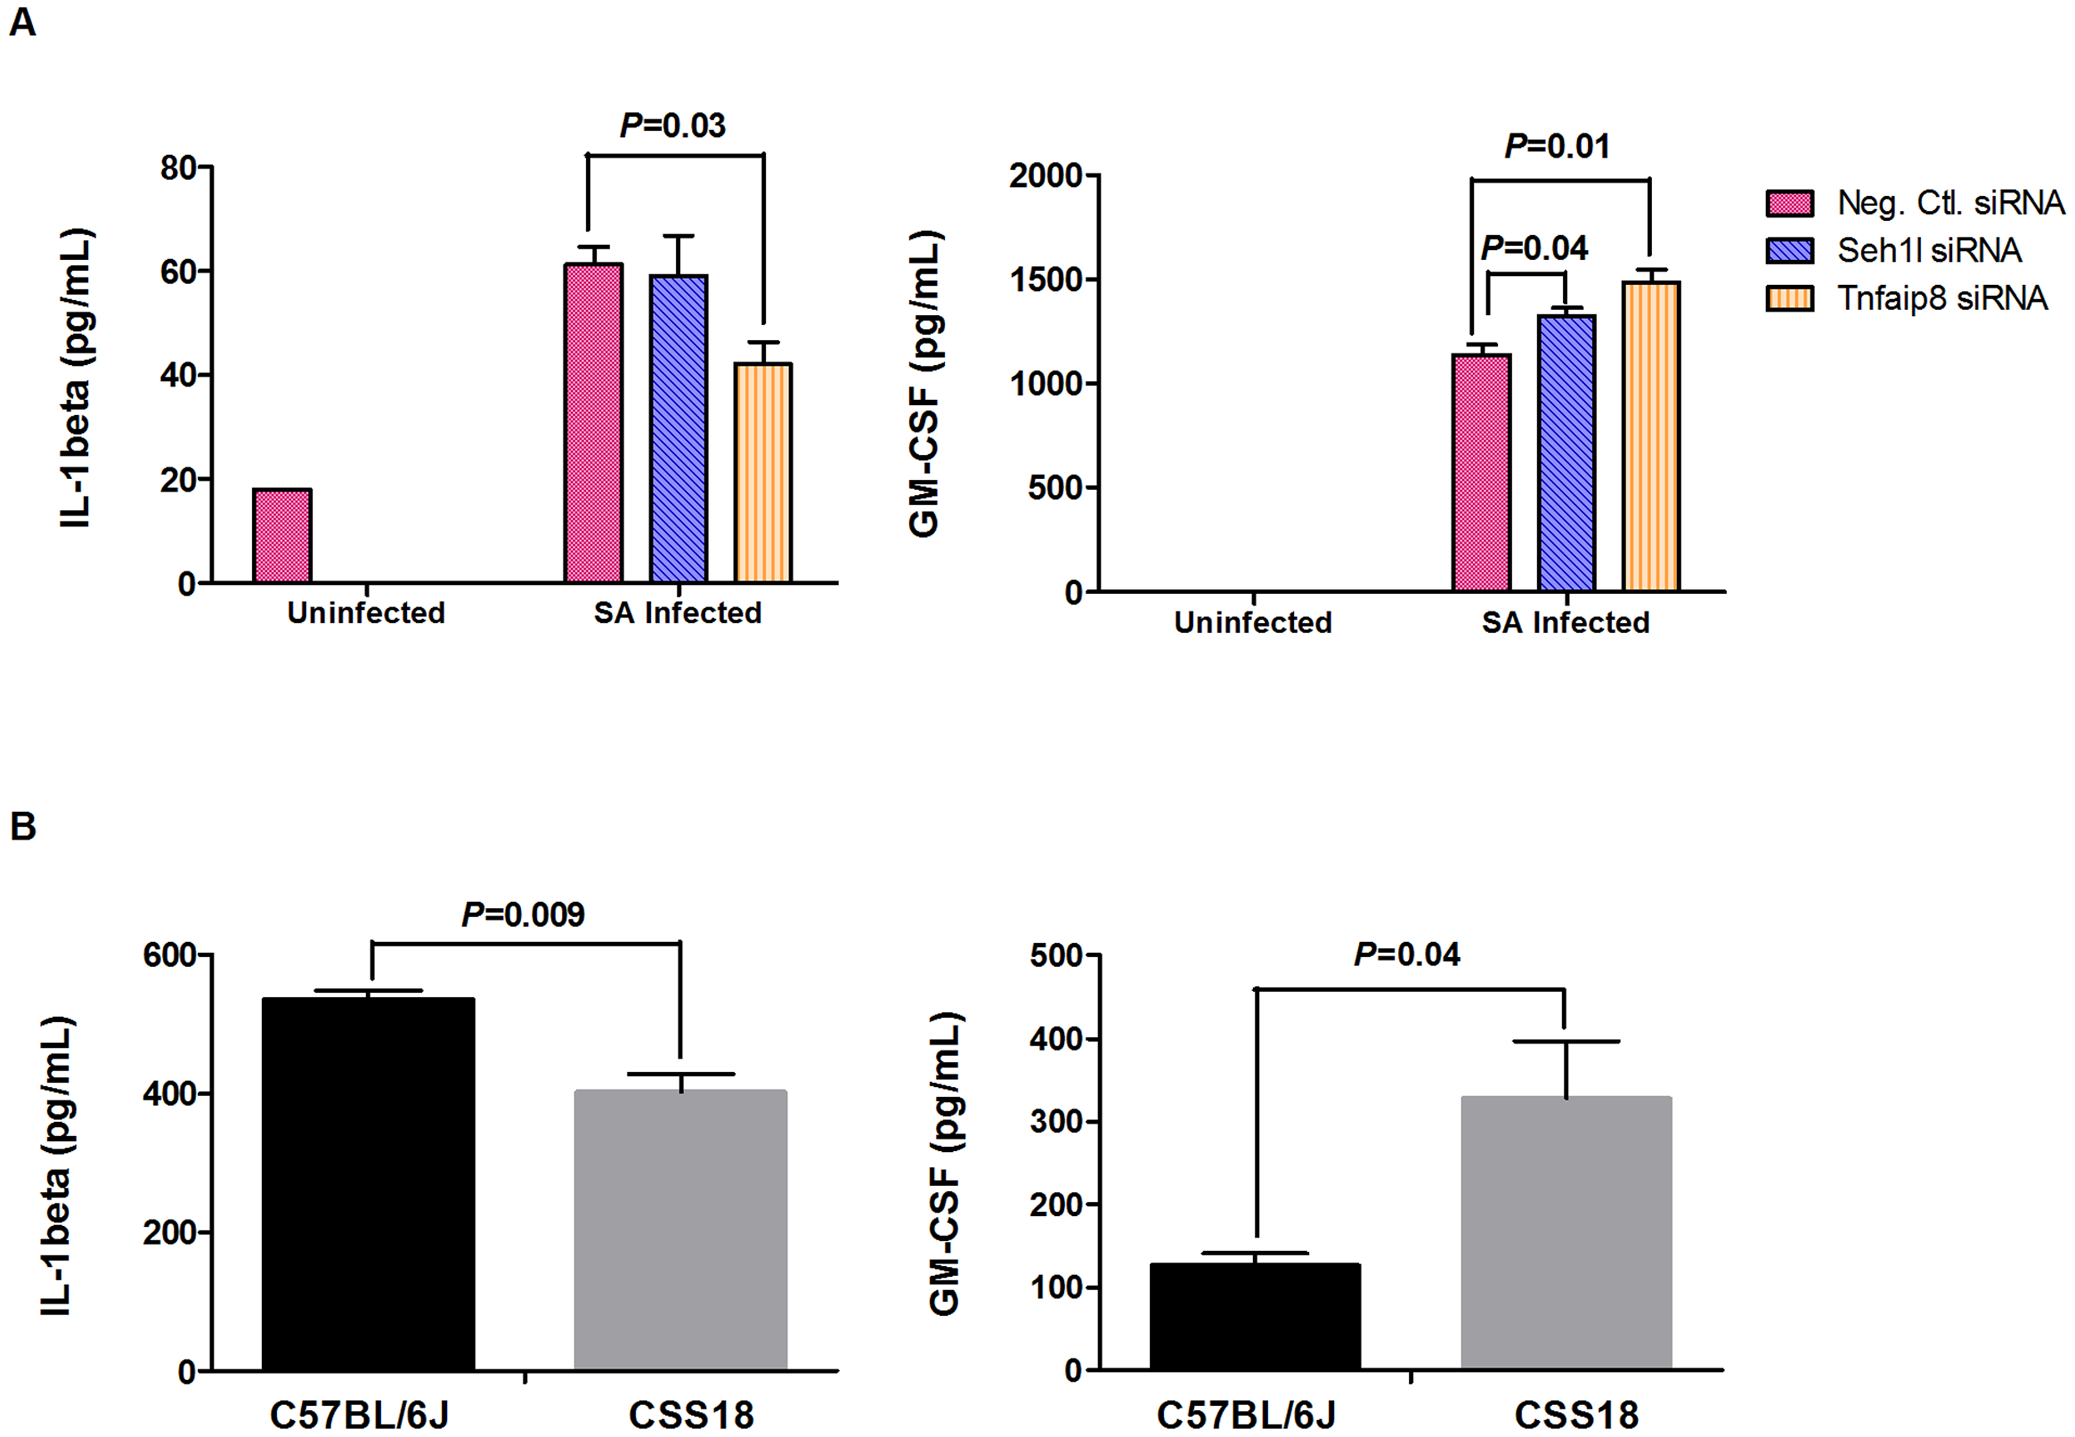 RAW264.7 cells transfected with <i>Tnfaip8</i> and <i>Seh1l</i> siRNA and peritoneal macrophages from C57BL/6J and CSS18 exhibited significant and consistent patterns of change in the cytokine production (IL-1β and GM-CSF).